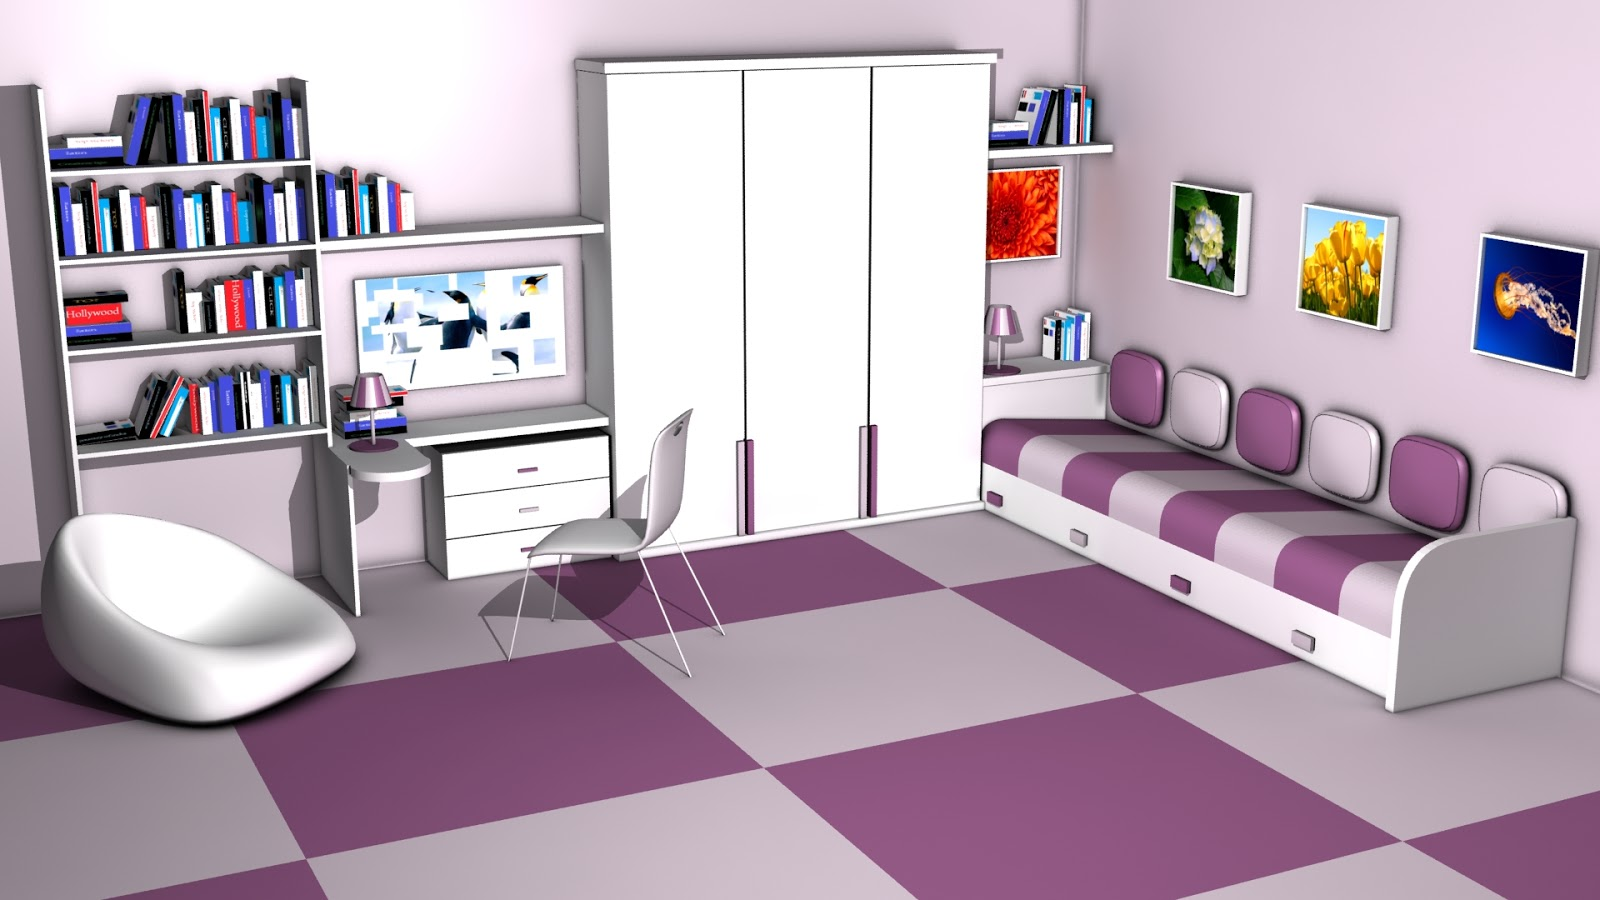 Sajid designs room interior design 3ds max - Design your room images ...